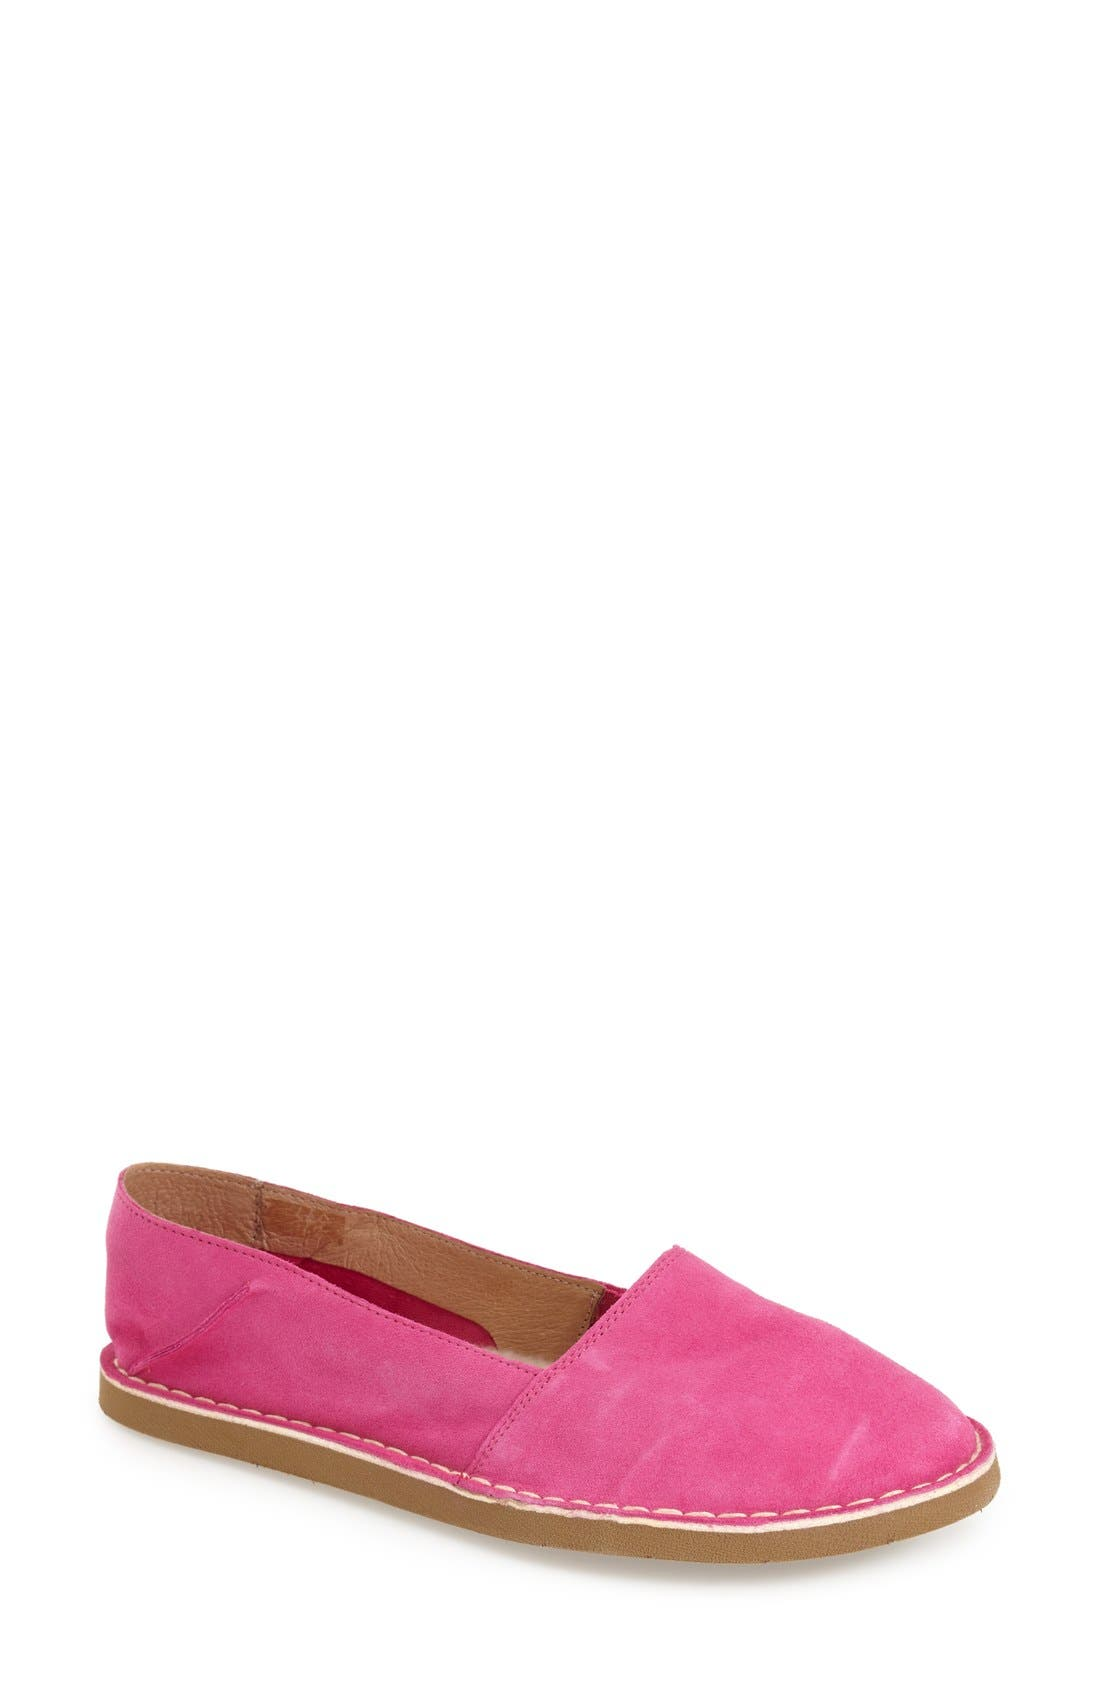 Alternate Image 1 Selected - patricia green 'Mia' Flat Slipper (Women)